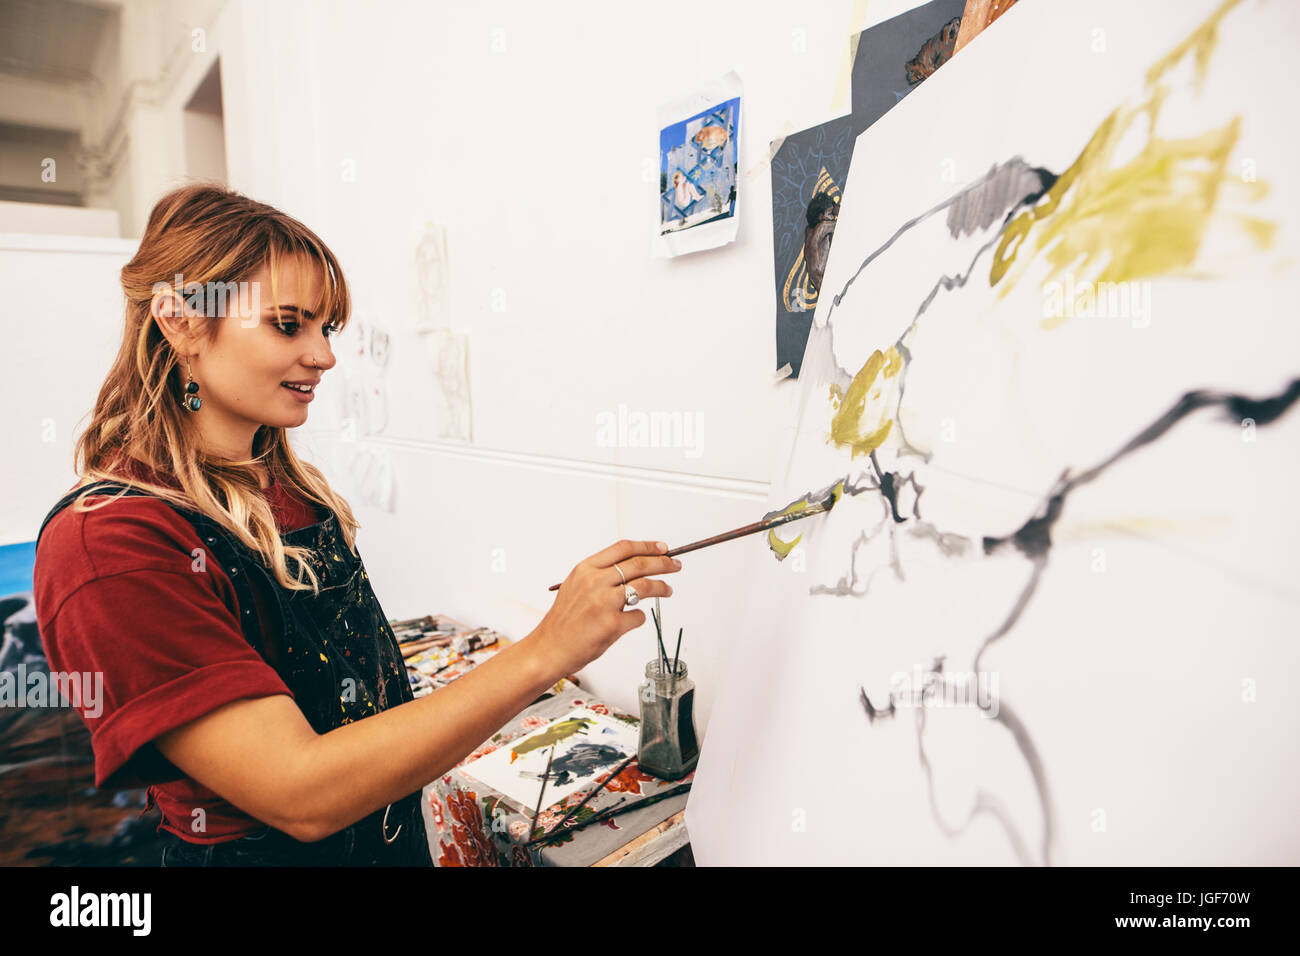 Creative female painter paints a colorful picture on canvas in workshop. Woman artist making a painting in her studio. - Stock Image